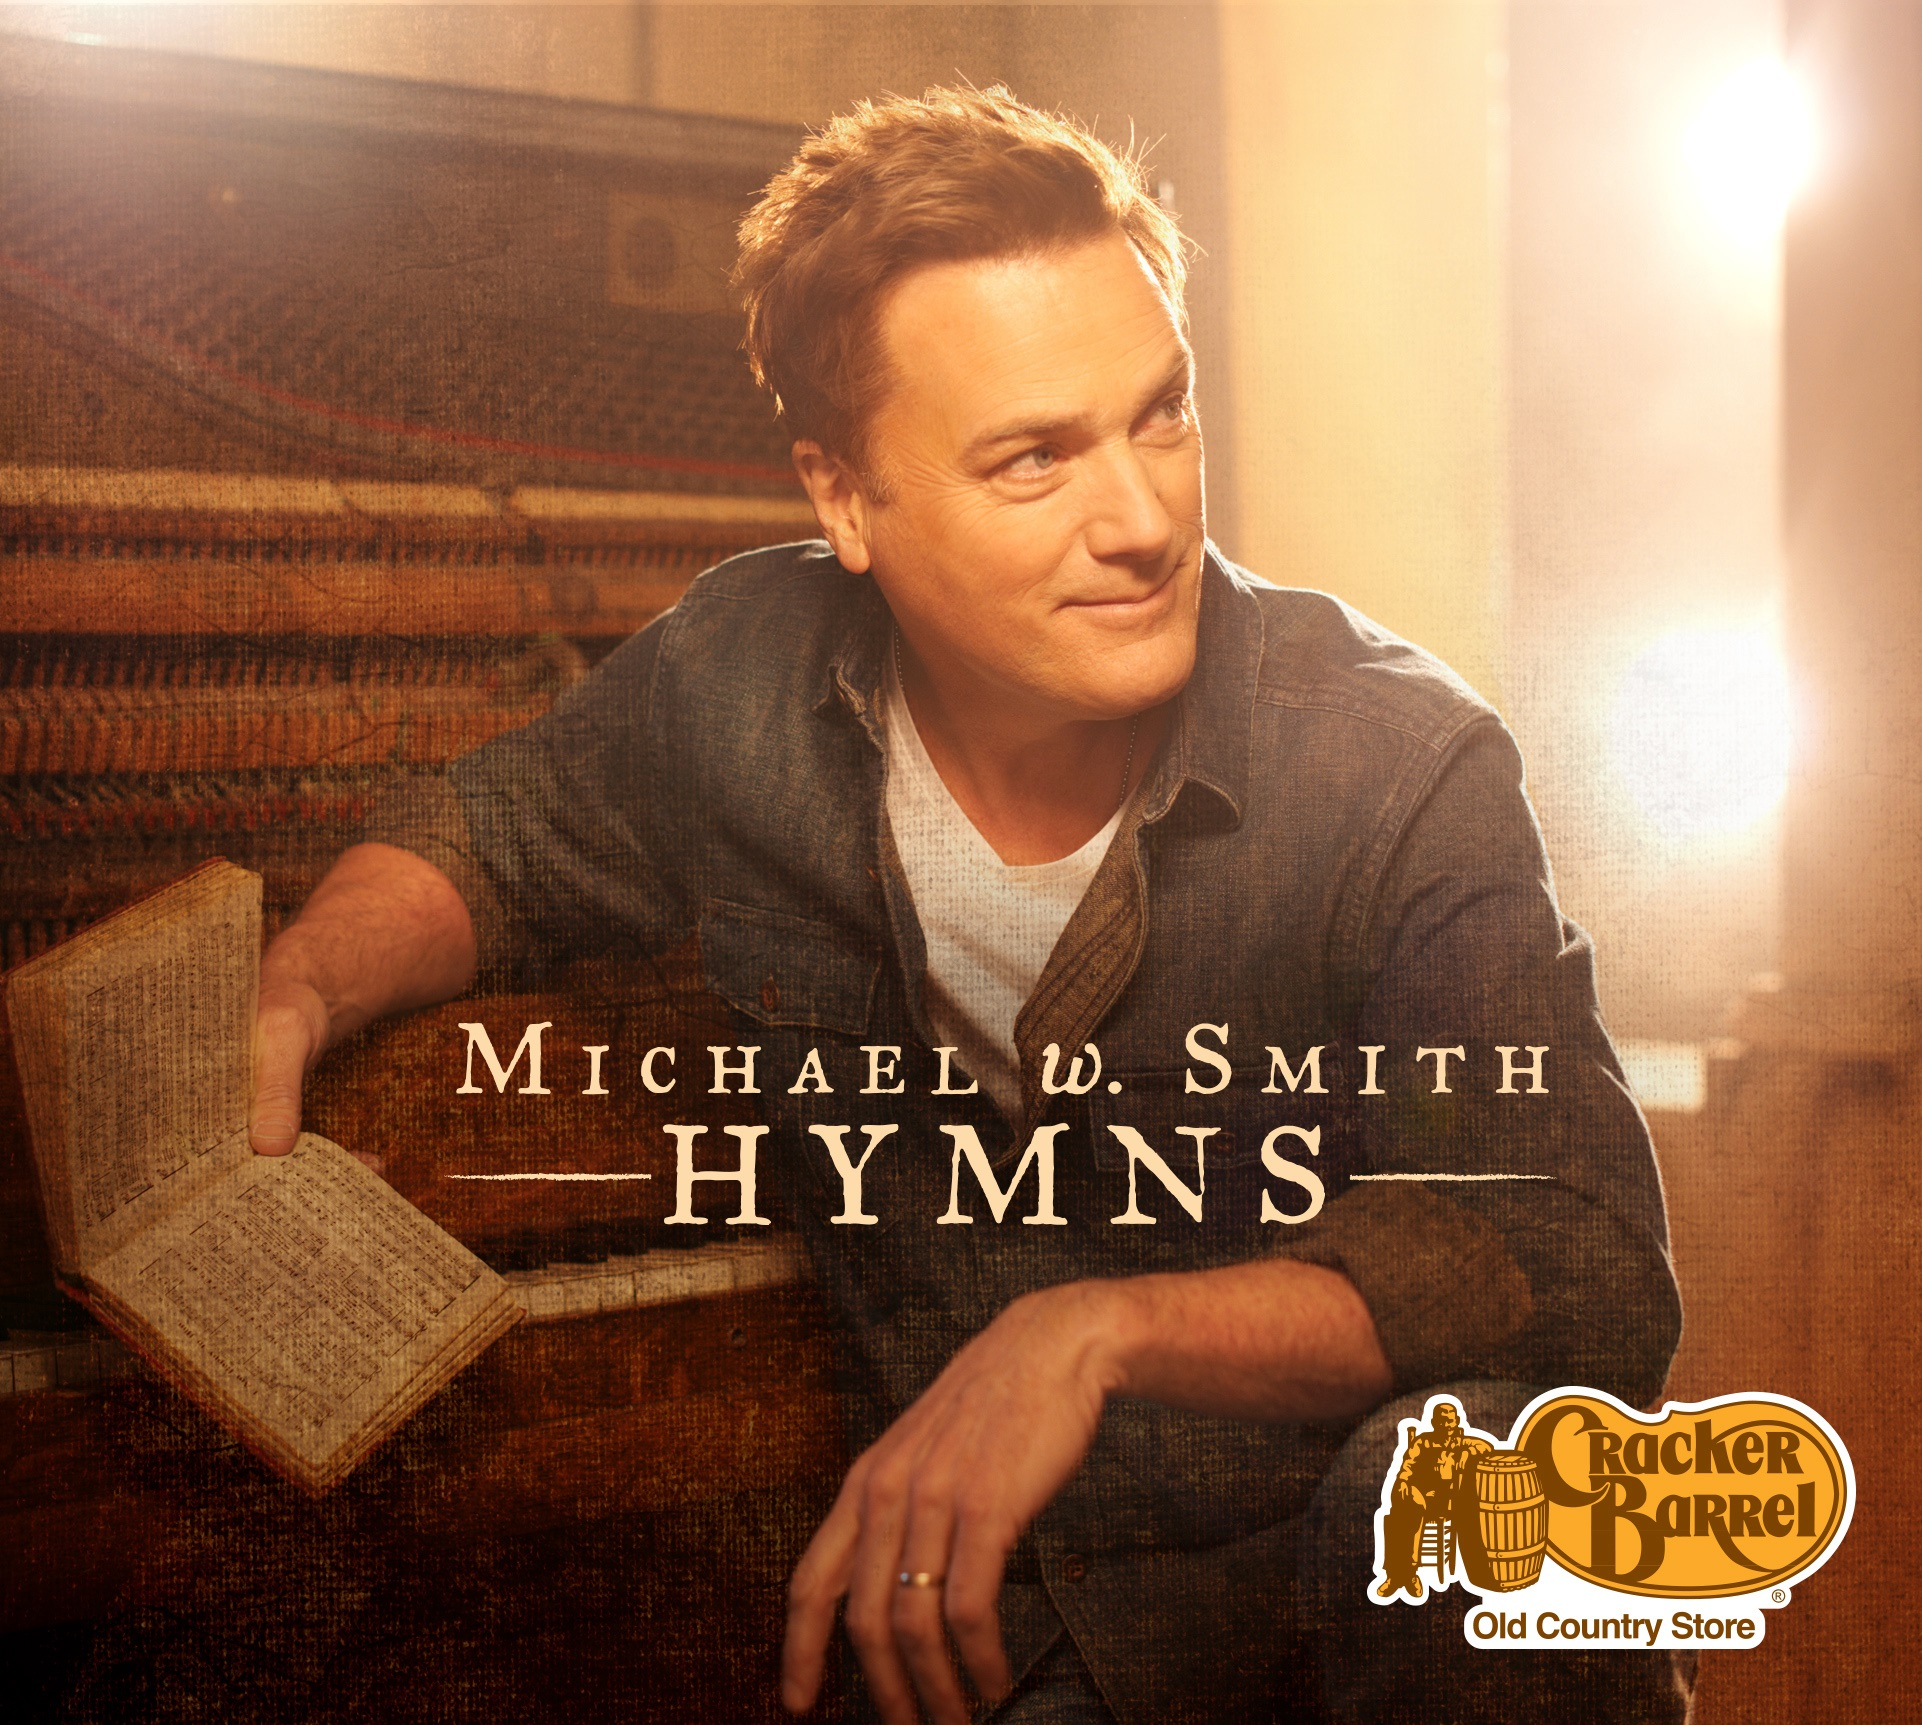 """Michael W. Smith and Cracker Barrel Old Country Store® Announce Exclusive Album """"Hymns"""" Out March 24"""